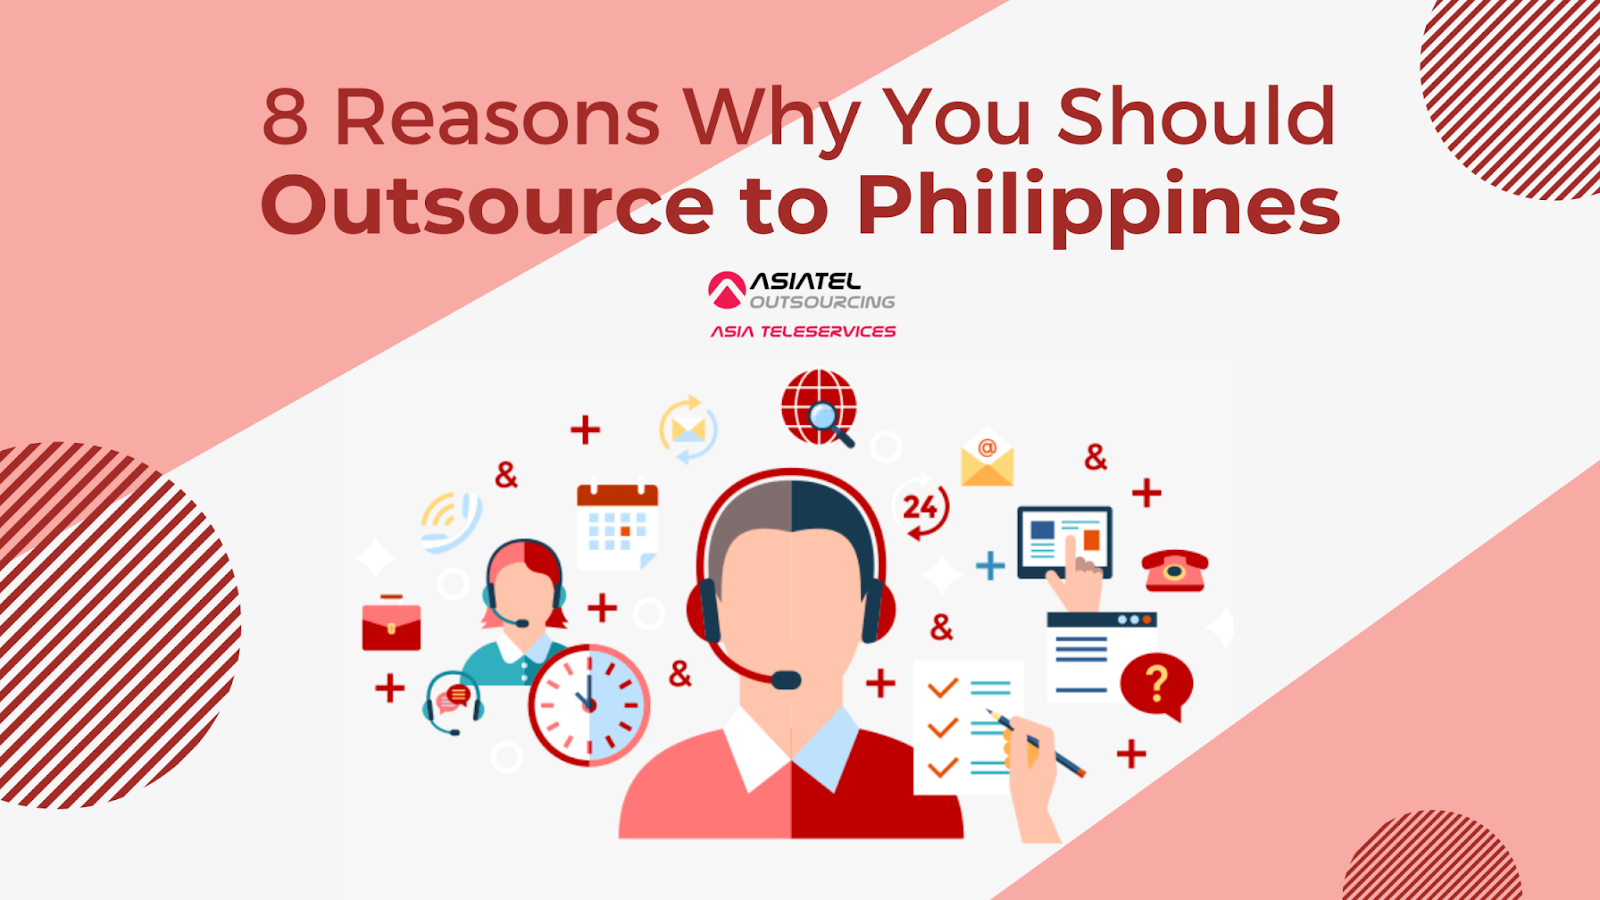 8 Reasons Why You Should Outsource to Philippines